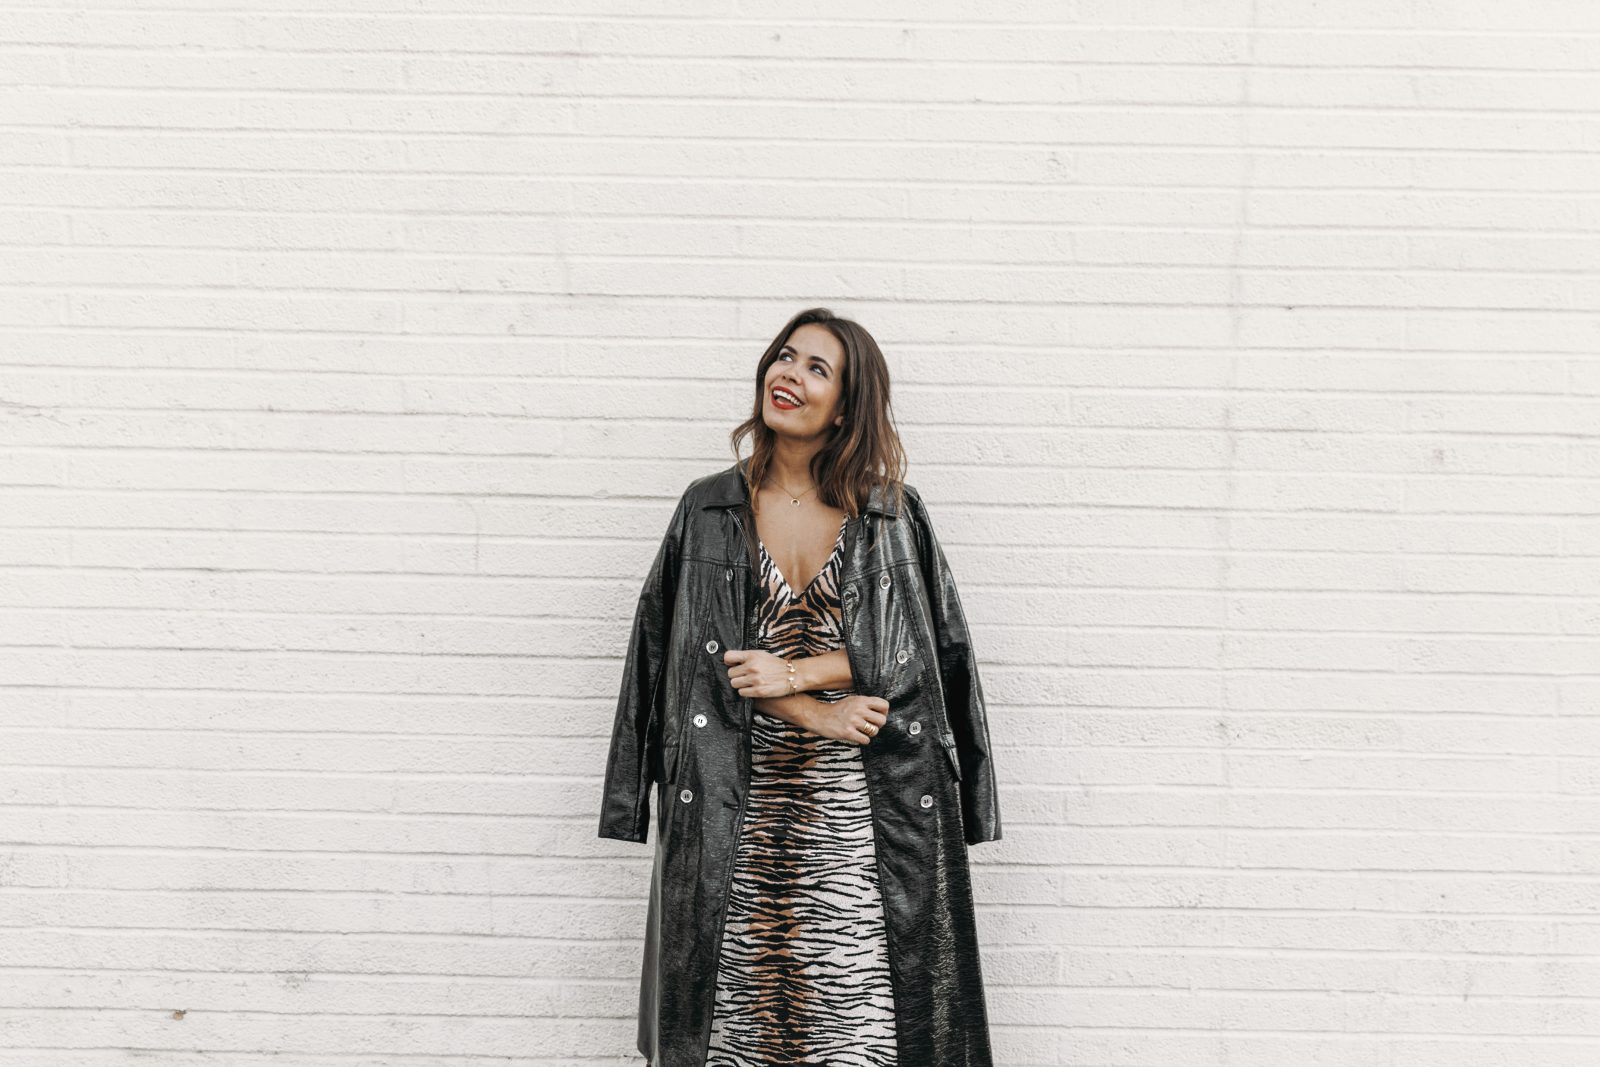 mark_and_spencer-alexa_chung_collection-animal_print_long_dress-black_trench-black_booties-knitt_jumper-outfit-la-street_style-collage_vintage-maxi_dress-79